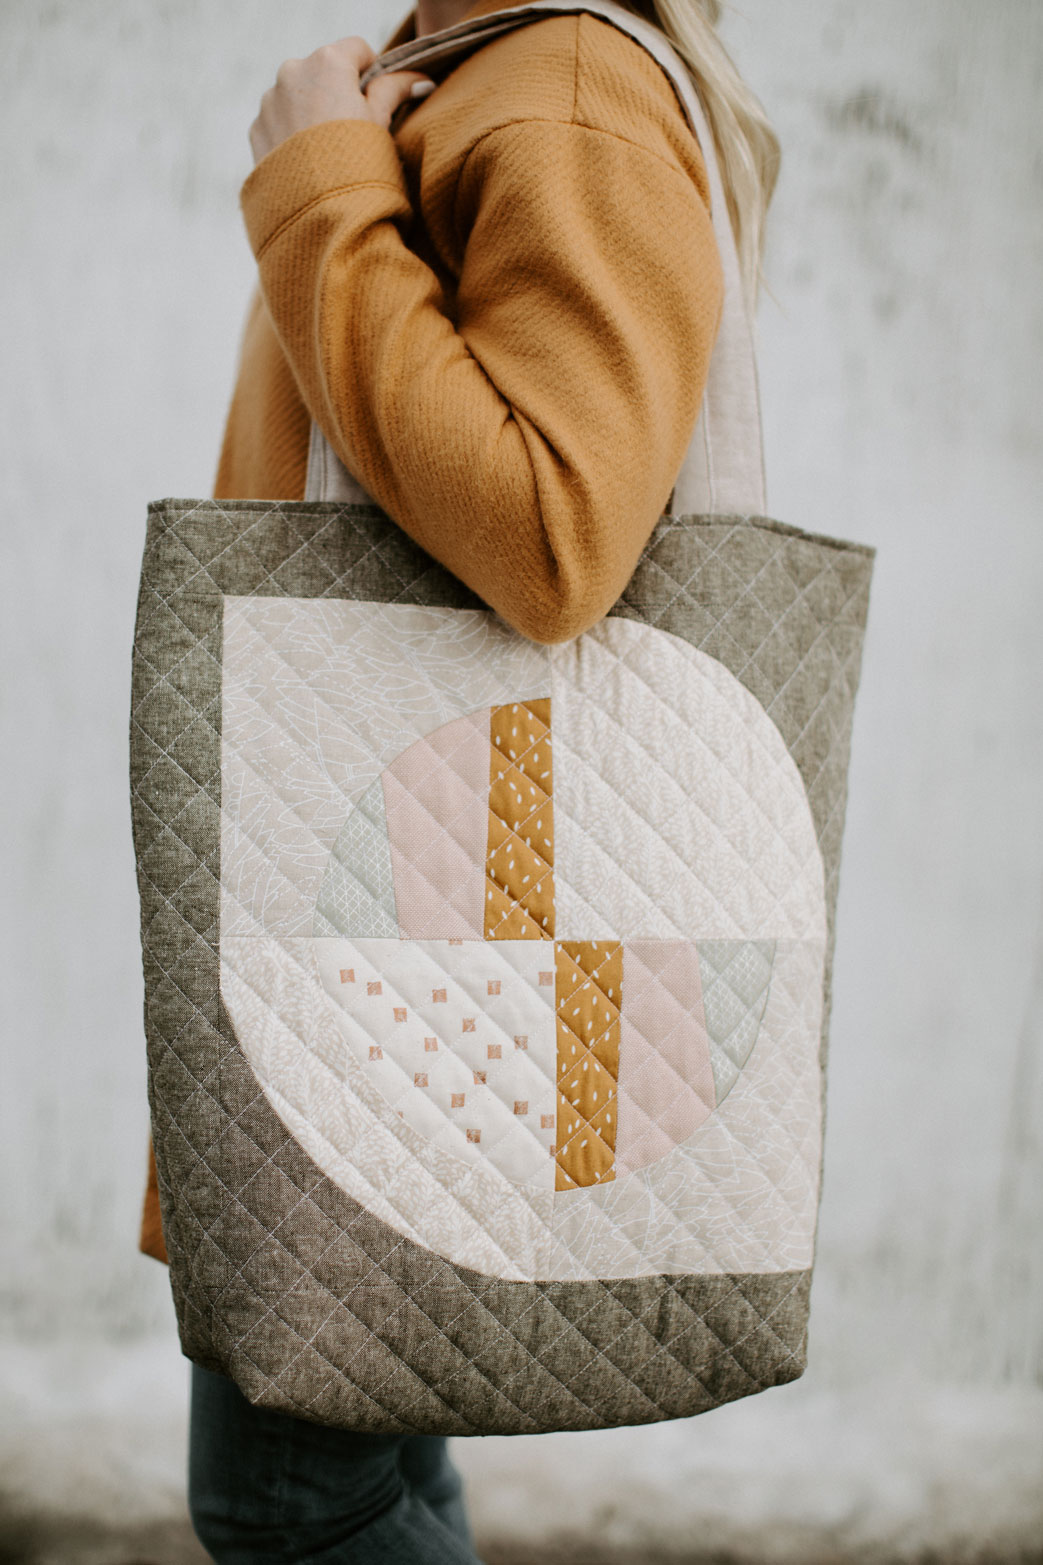 This FREE quilted tote bag tutorial shows step by step how to create a large tote bag using the Modern Fans quilt block pattern. suzyquilts.com #freesewingpattern